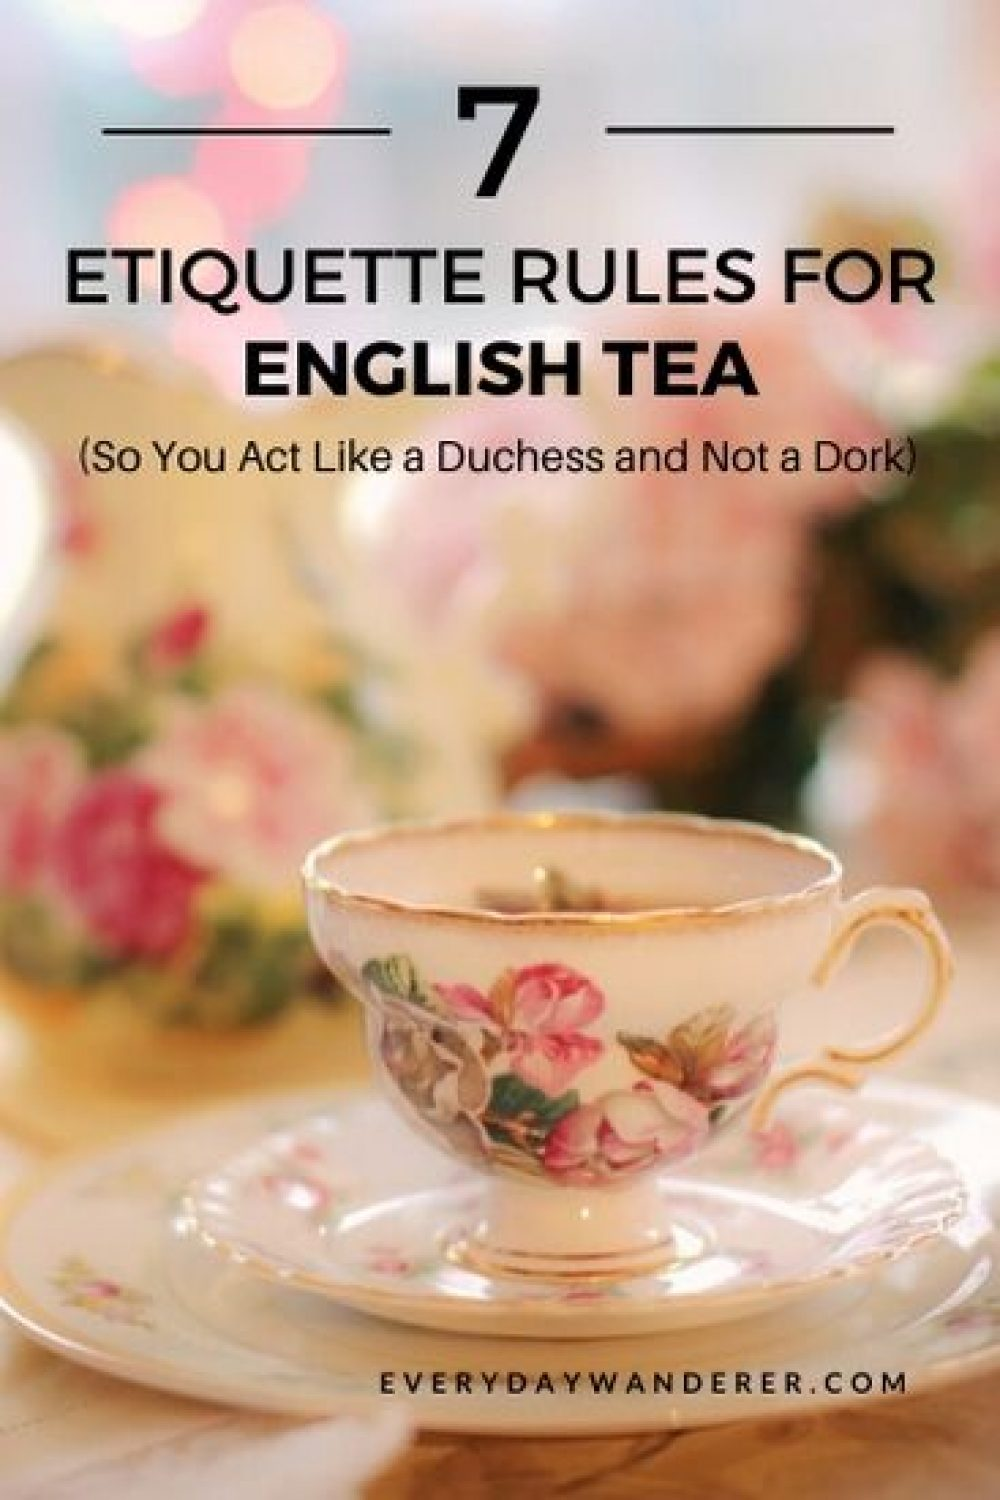 Etiquette for English Afternoon Tea | Afternoon Tea Etiquette | Afternoon Tea | English Tea | English Tea Party | Afternoon Tea Parties | English Tea Sandwiches | Afternoon Tea London | Tea | Tea Party Ideas | Tea Party Food | Afternoon Tea Etiquette Fun | Afternoon Tea Etagere | English Afternoon Tea | English Tea Etiquette | English Tea Party | English Tea Sandwiches | English Tea Party Food | English Tea Cakes | #london #england #uk #etiquette #tea